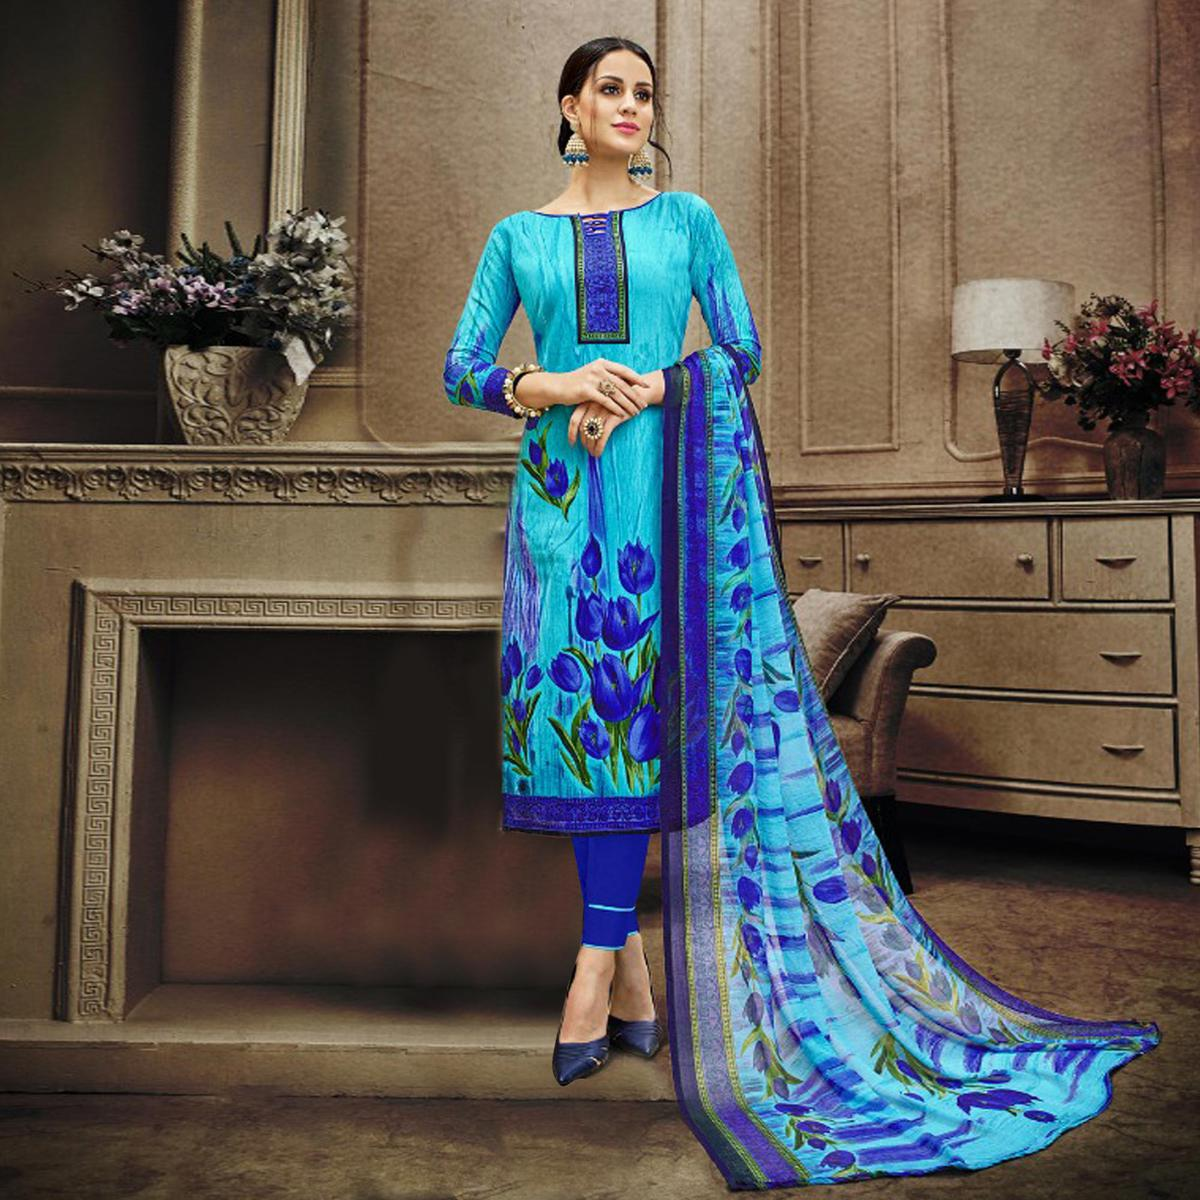 d4f4111e23 Buy Blue Colored Designer Pakistani Floral Printed Pure Cambric Cotton  Dress Material Online India, Best Prices, Reviews - Peachmode